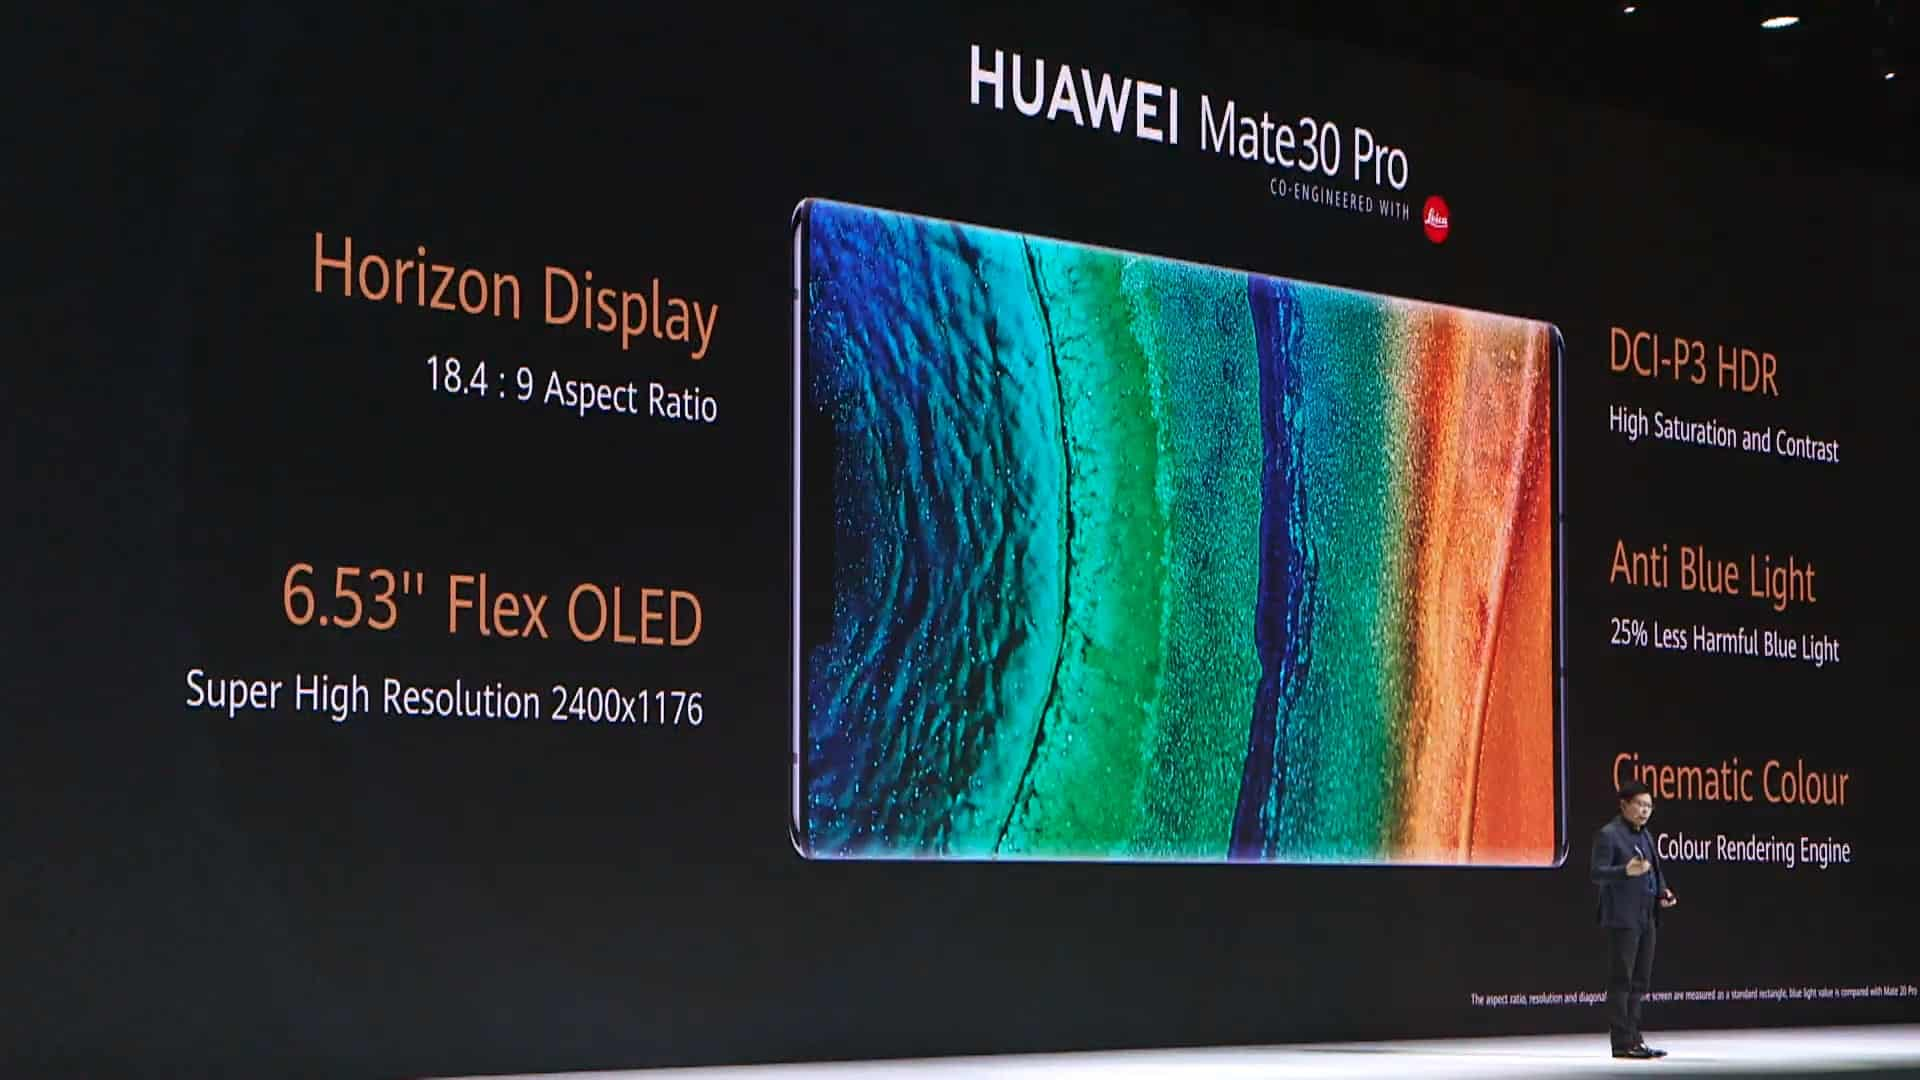 Huawei Mate 30 Pro event image 3